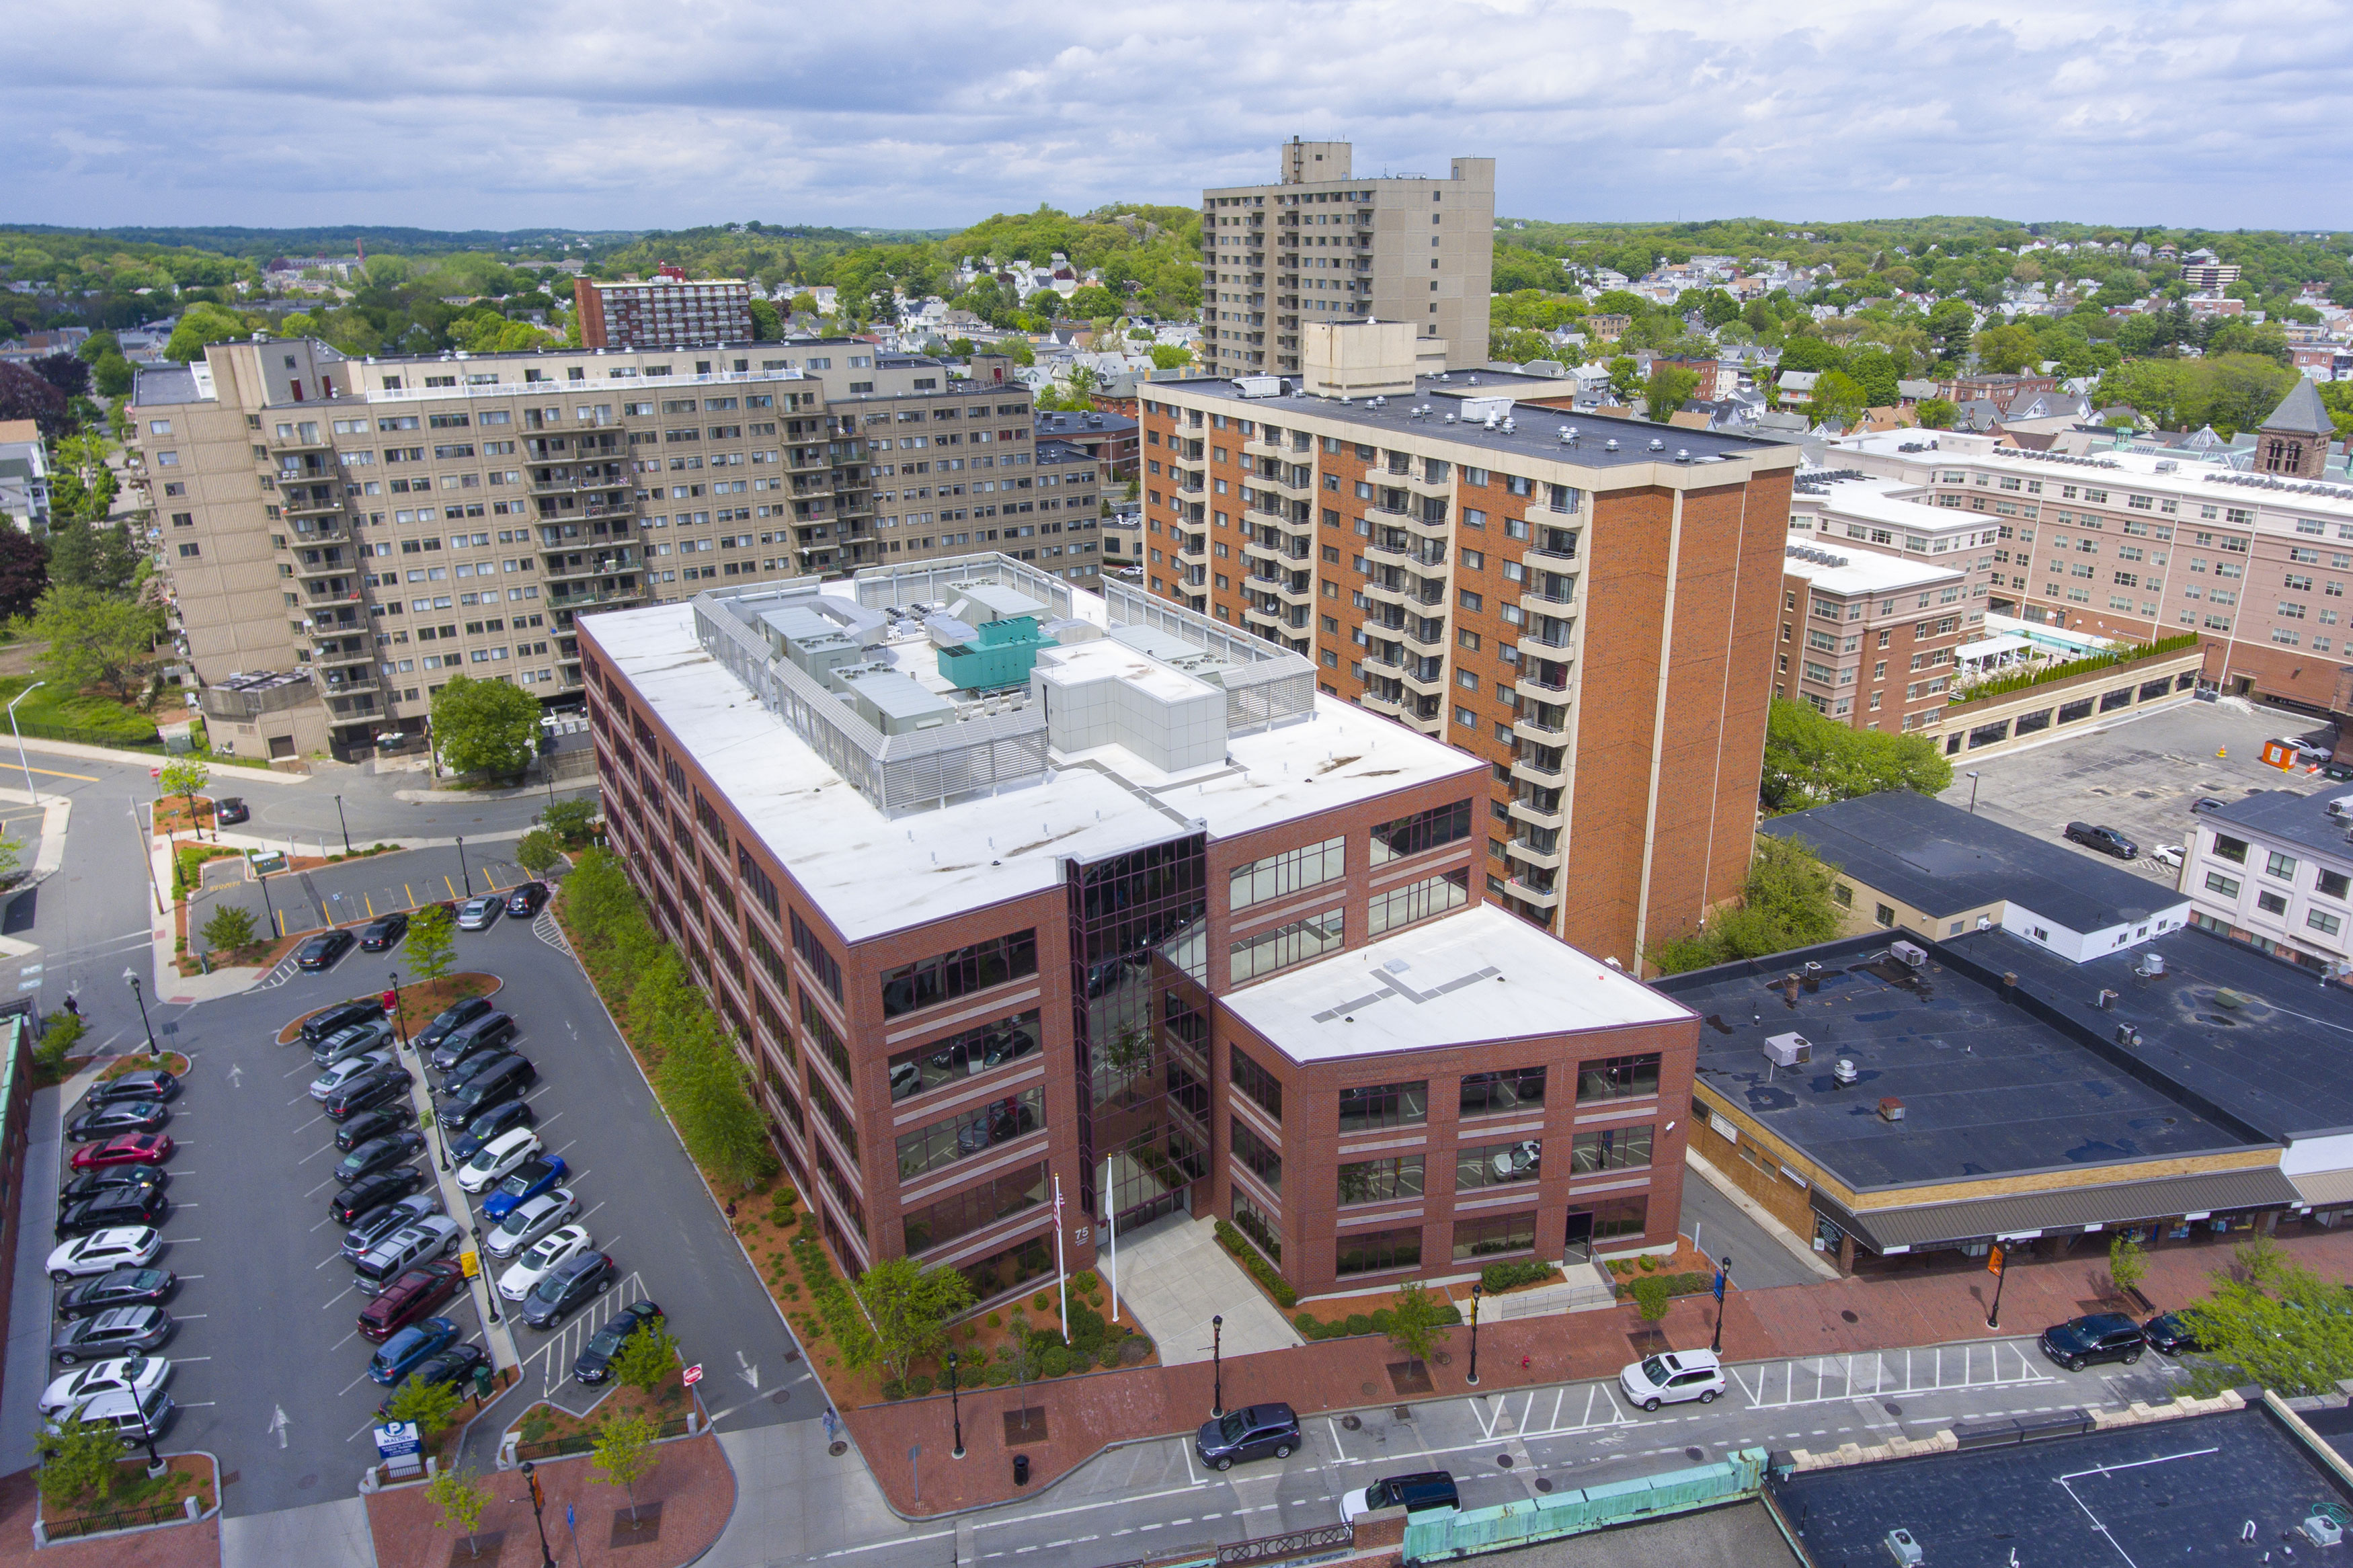 An aerial view of apartment buildings and parking lots in Malden, Massachusetts.